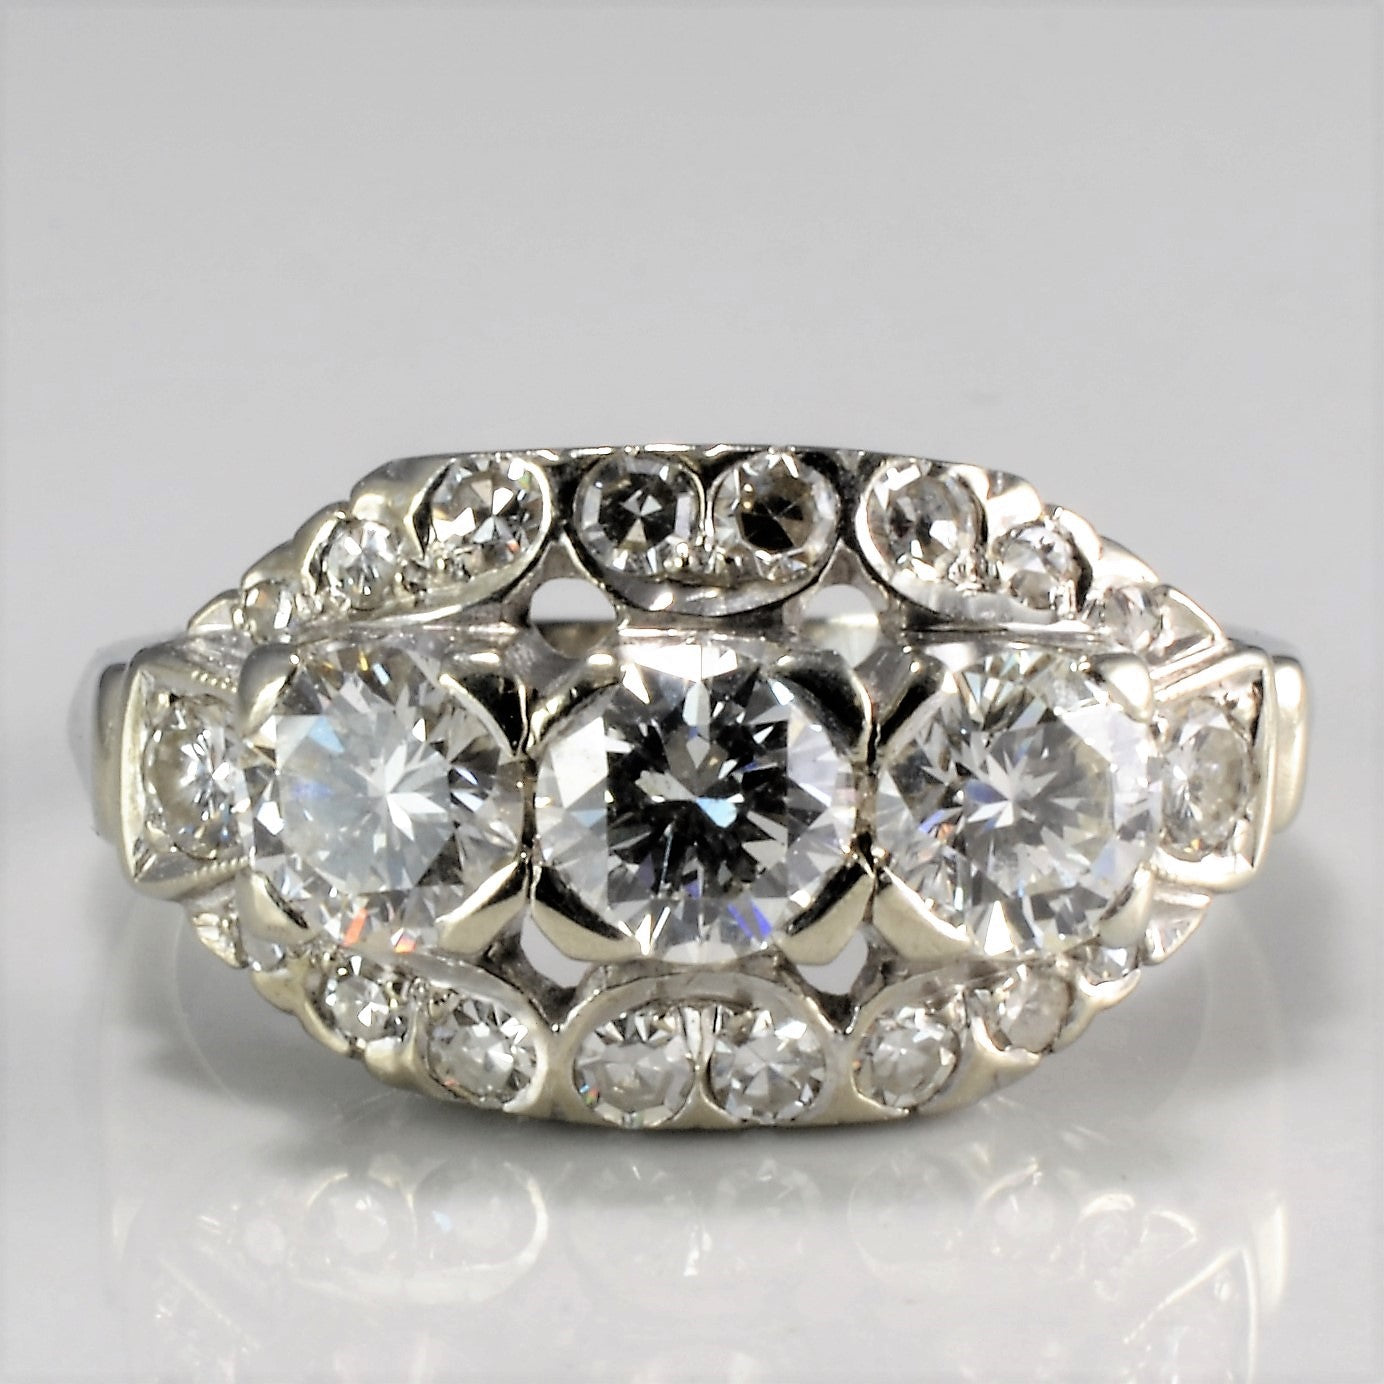 Vintage Art Deco Diamond Engagement Ring | 1.36 ctw, SZ 5.5 |